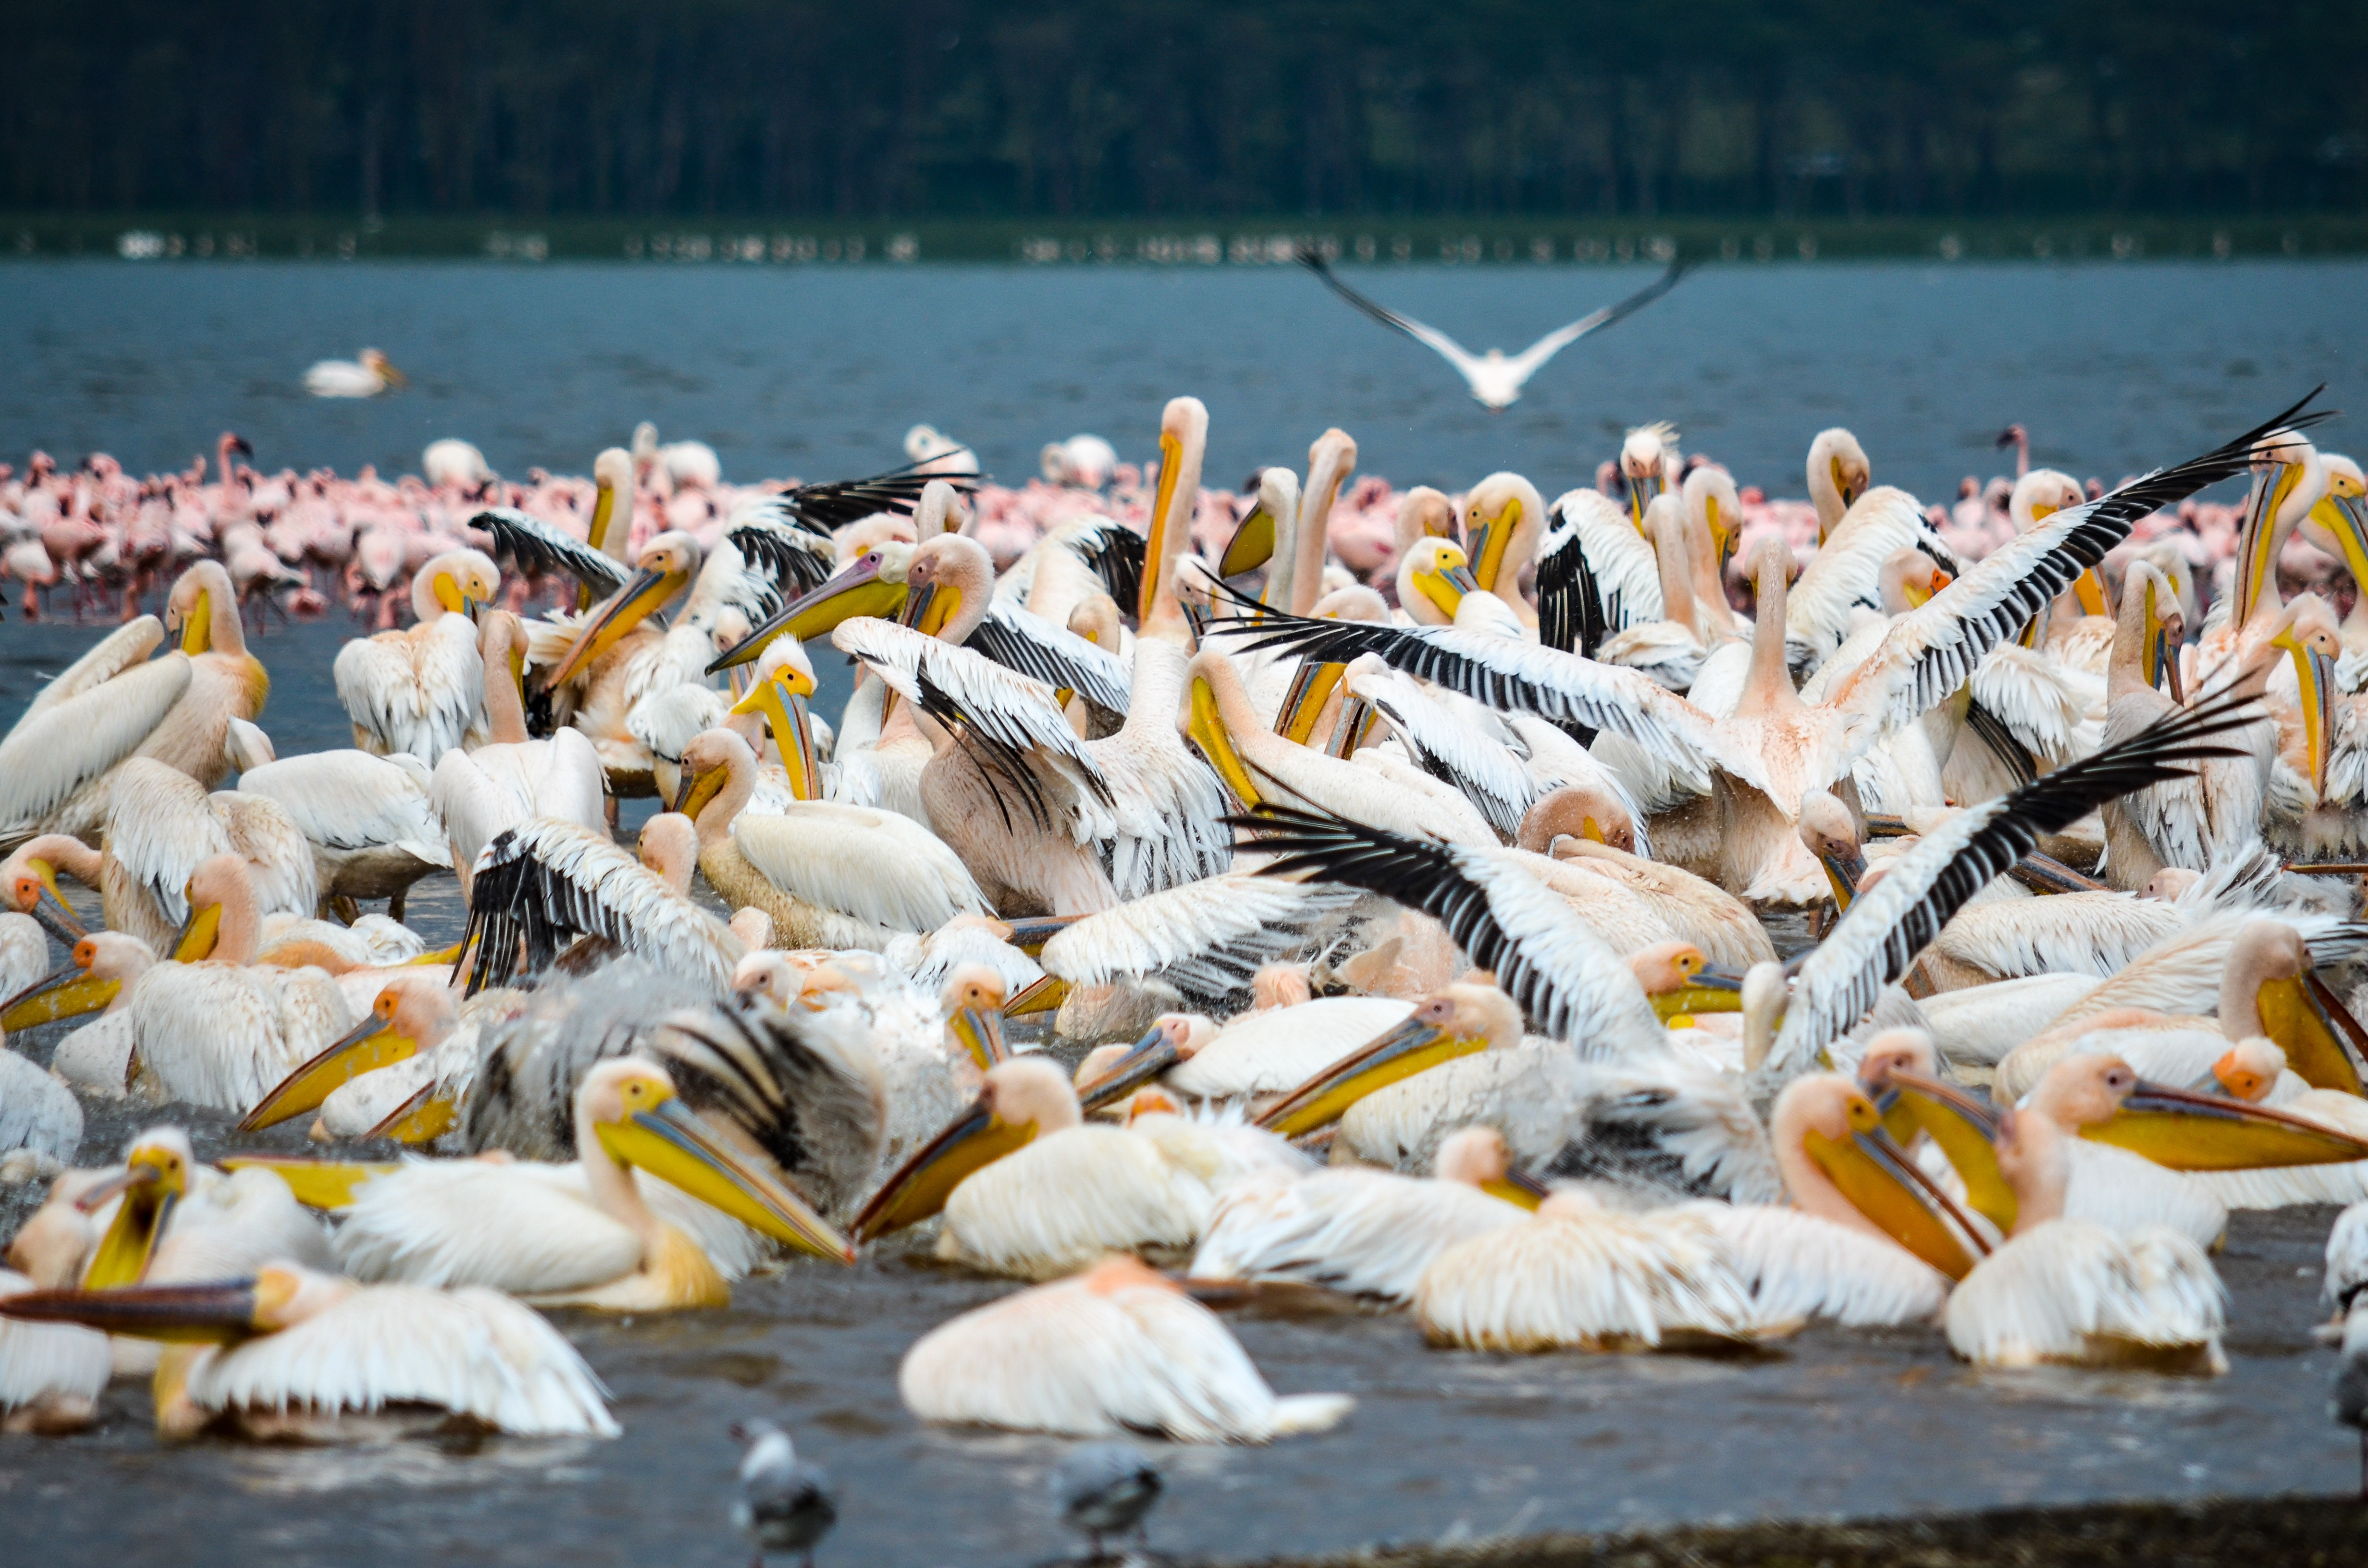 White, Black, and Yellow Birds, Seagulls, Storks, Sea bird, Sand, HQ Photo